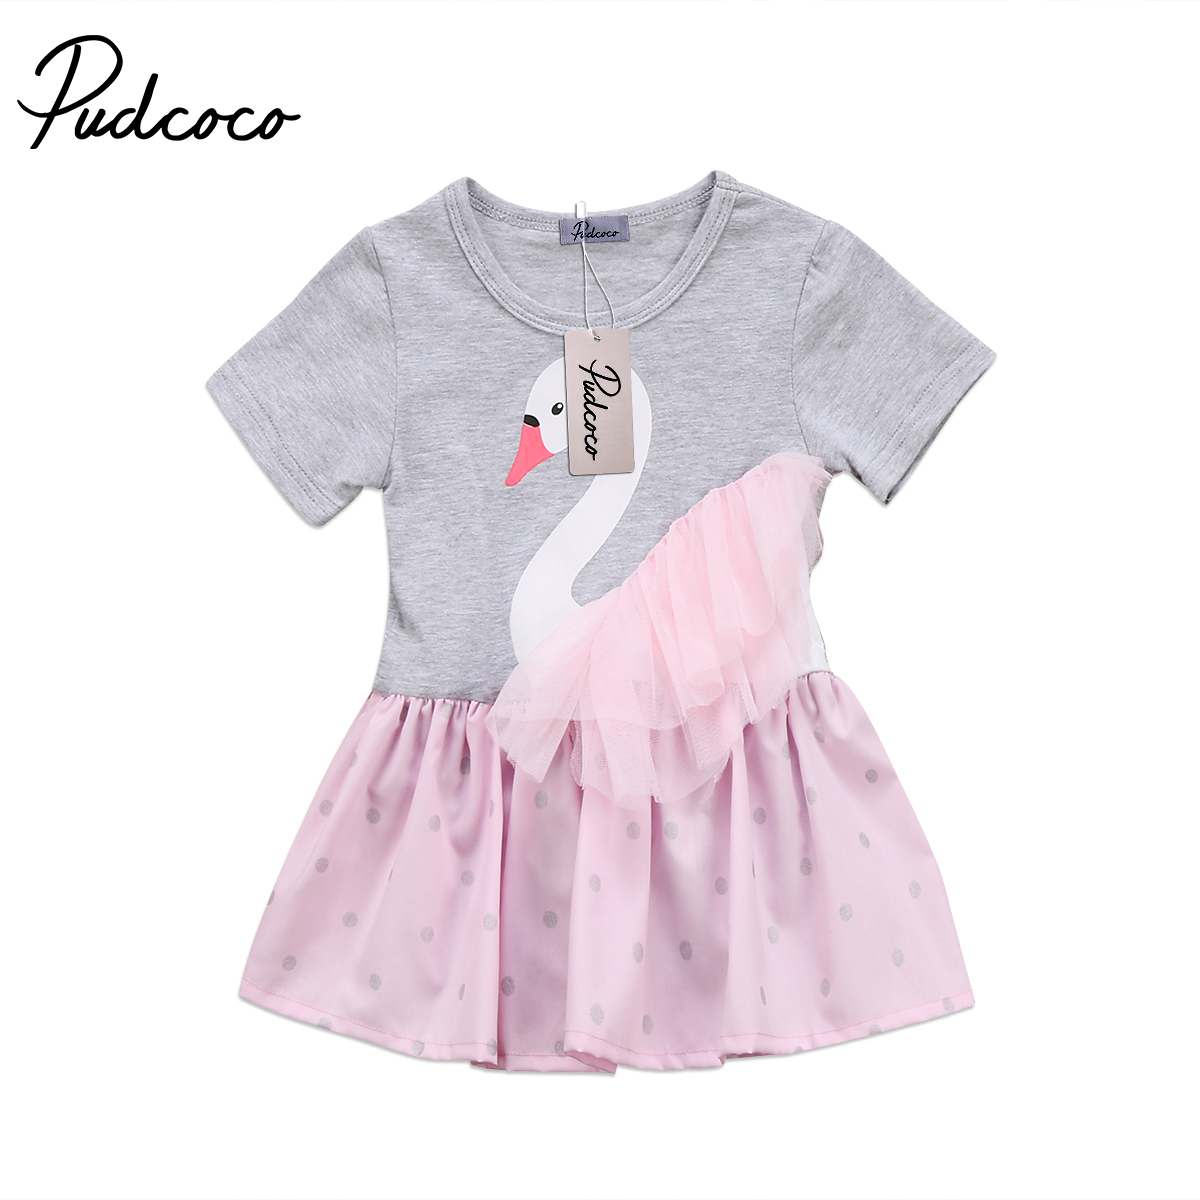 Cute Newborn Baby Girl Swan Cotton Short Sleeve Romper Dress Lace Dot Patchwork Dress Clothes